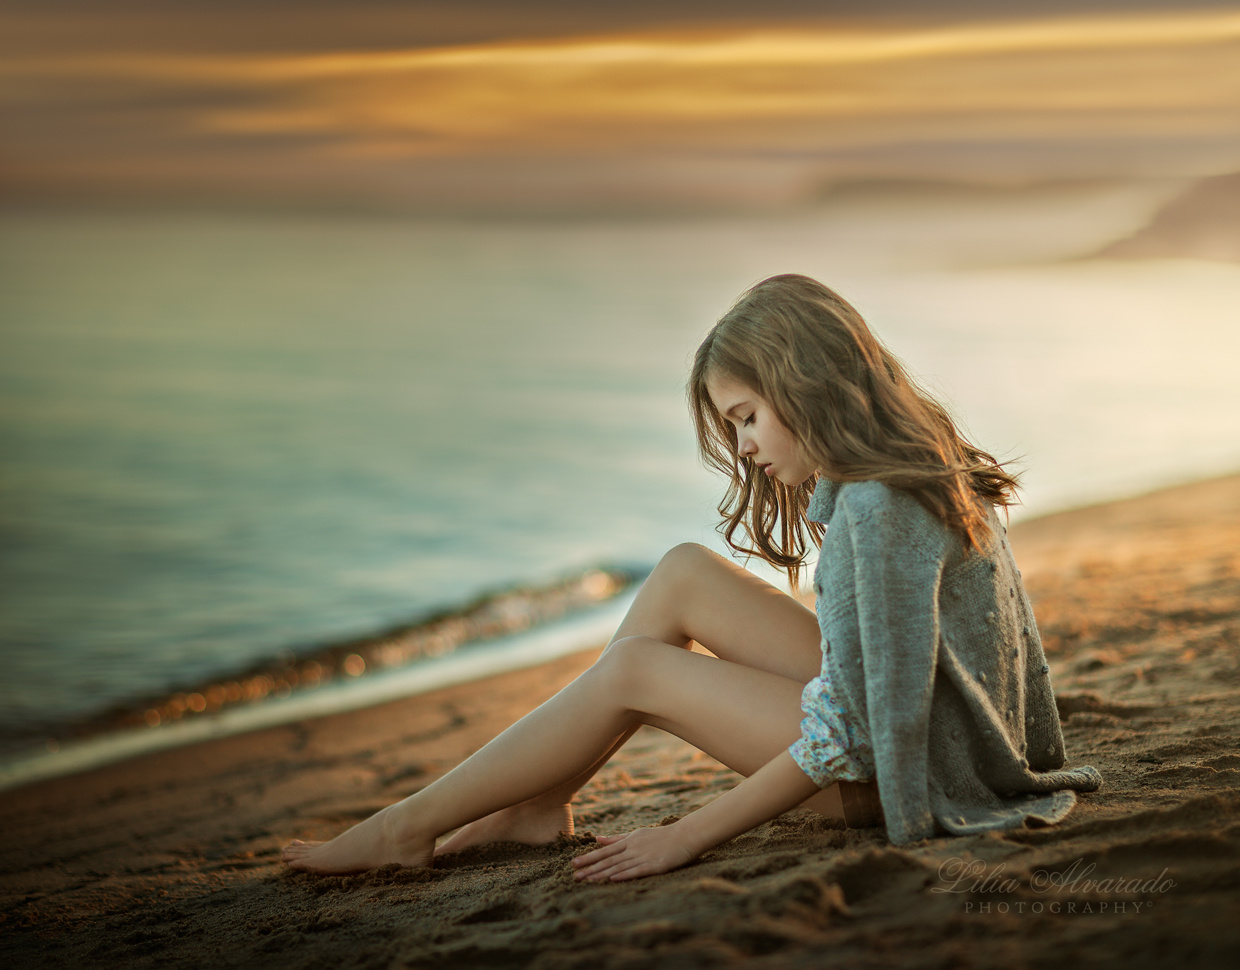 Alone with my thoughts... by Lilia Alvarado